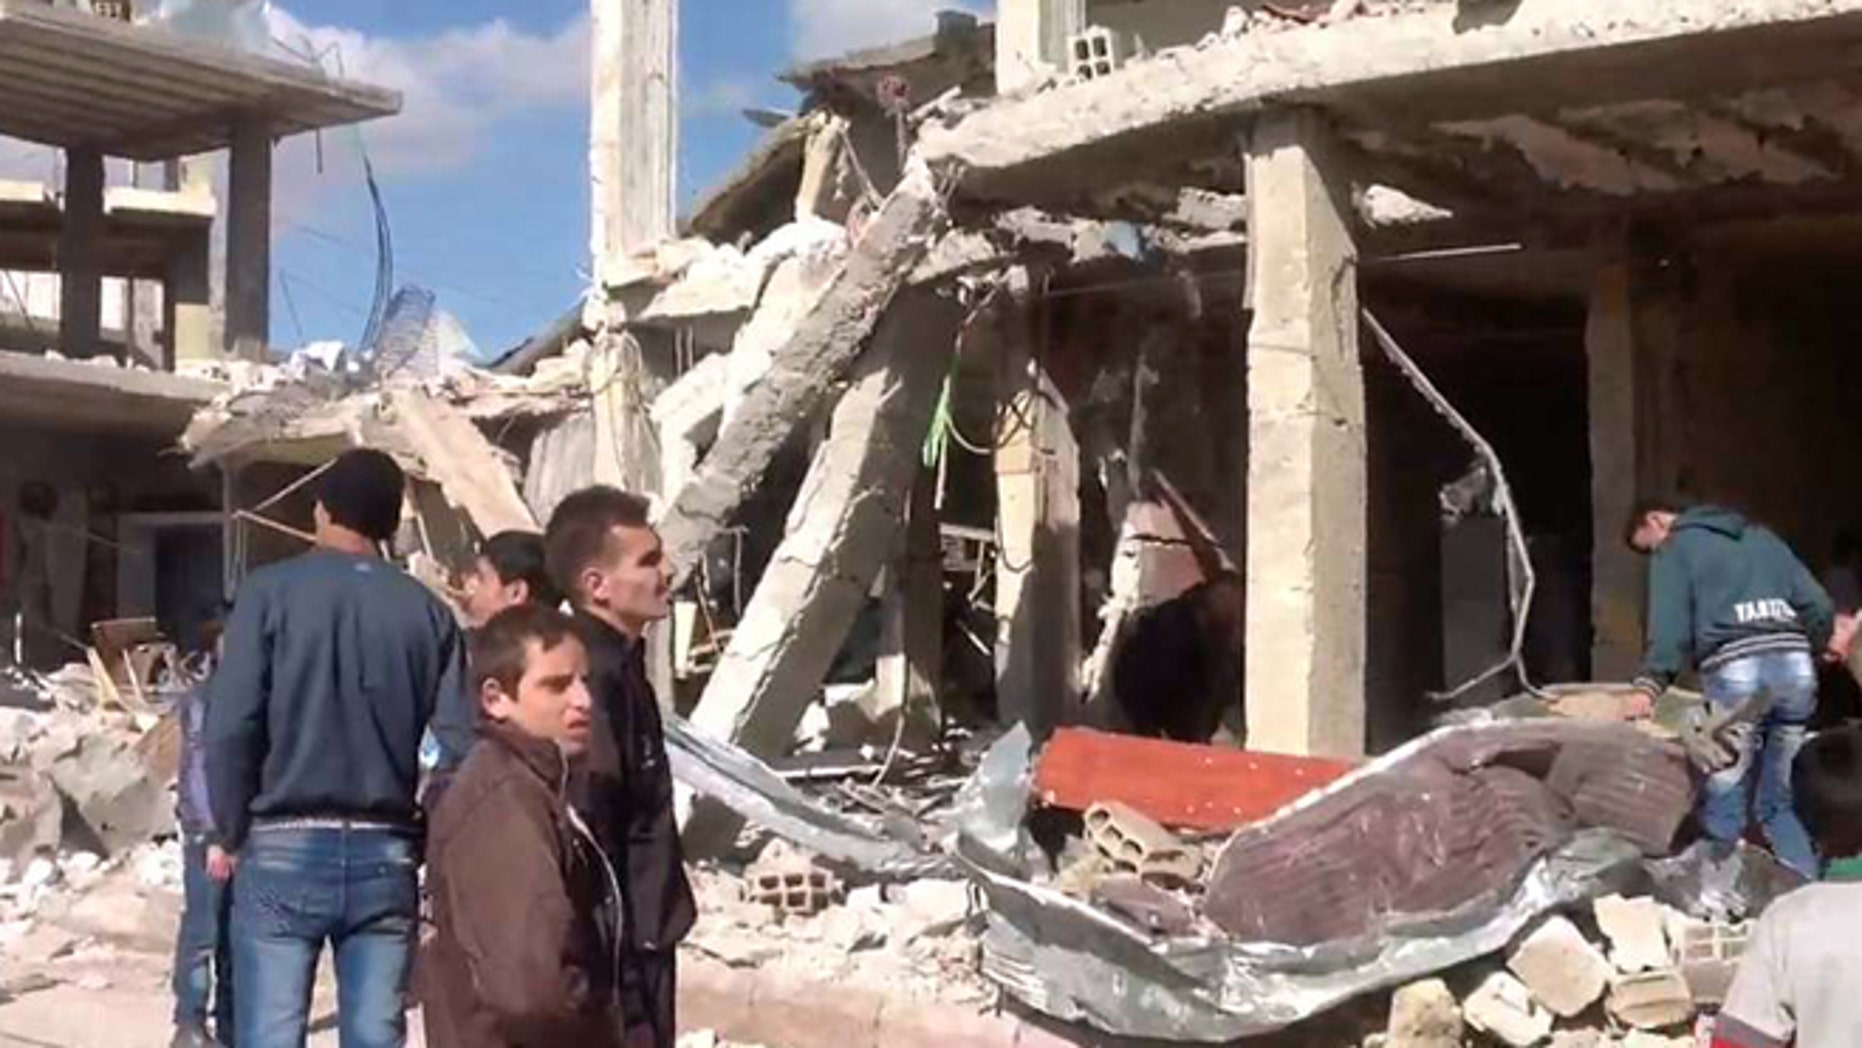 Dec. 13, 2012: In this photo released by the Syrian official news agency SANA, Syrian citizens gather in front of a damaged building destroyed by a car bomb in Qatana, 15 miles southwest of Damascus, Syria.